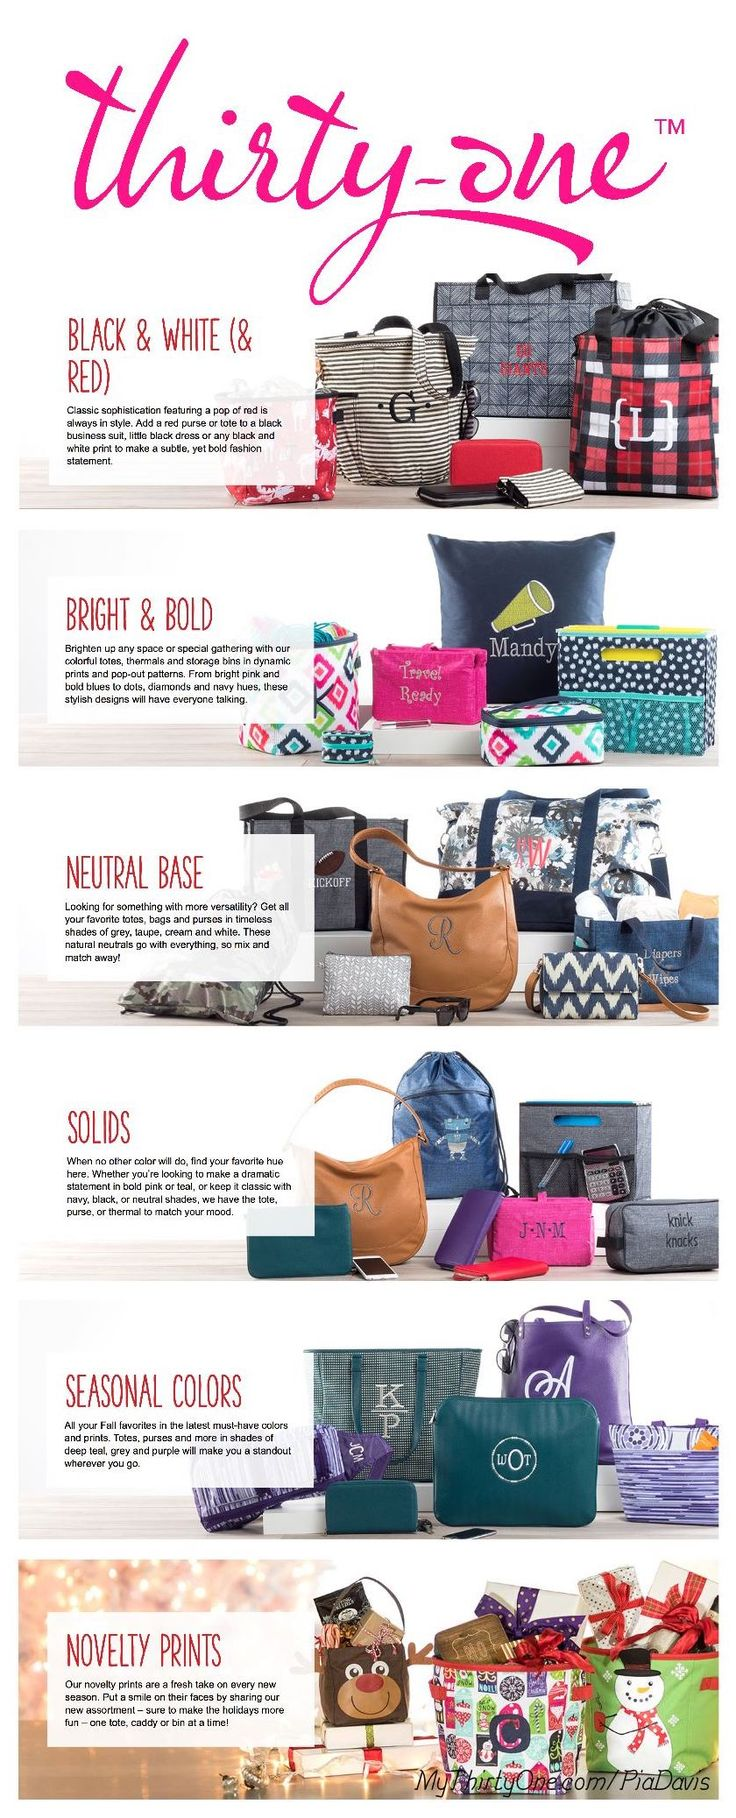 #31- Thirty-One Gifts has colors for every style and season. Black & White & Red, Bright & Bold, Neutral Base, Solids, Seasonal Colors and Novelty Prints. See them all at MyThirtyOne.com/PiaDavis or find your consultant in the upper right corner.